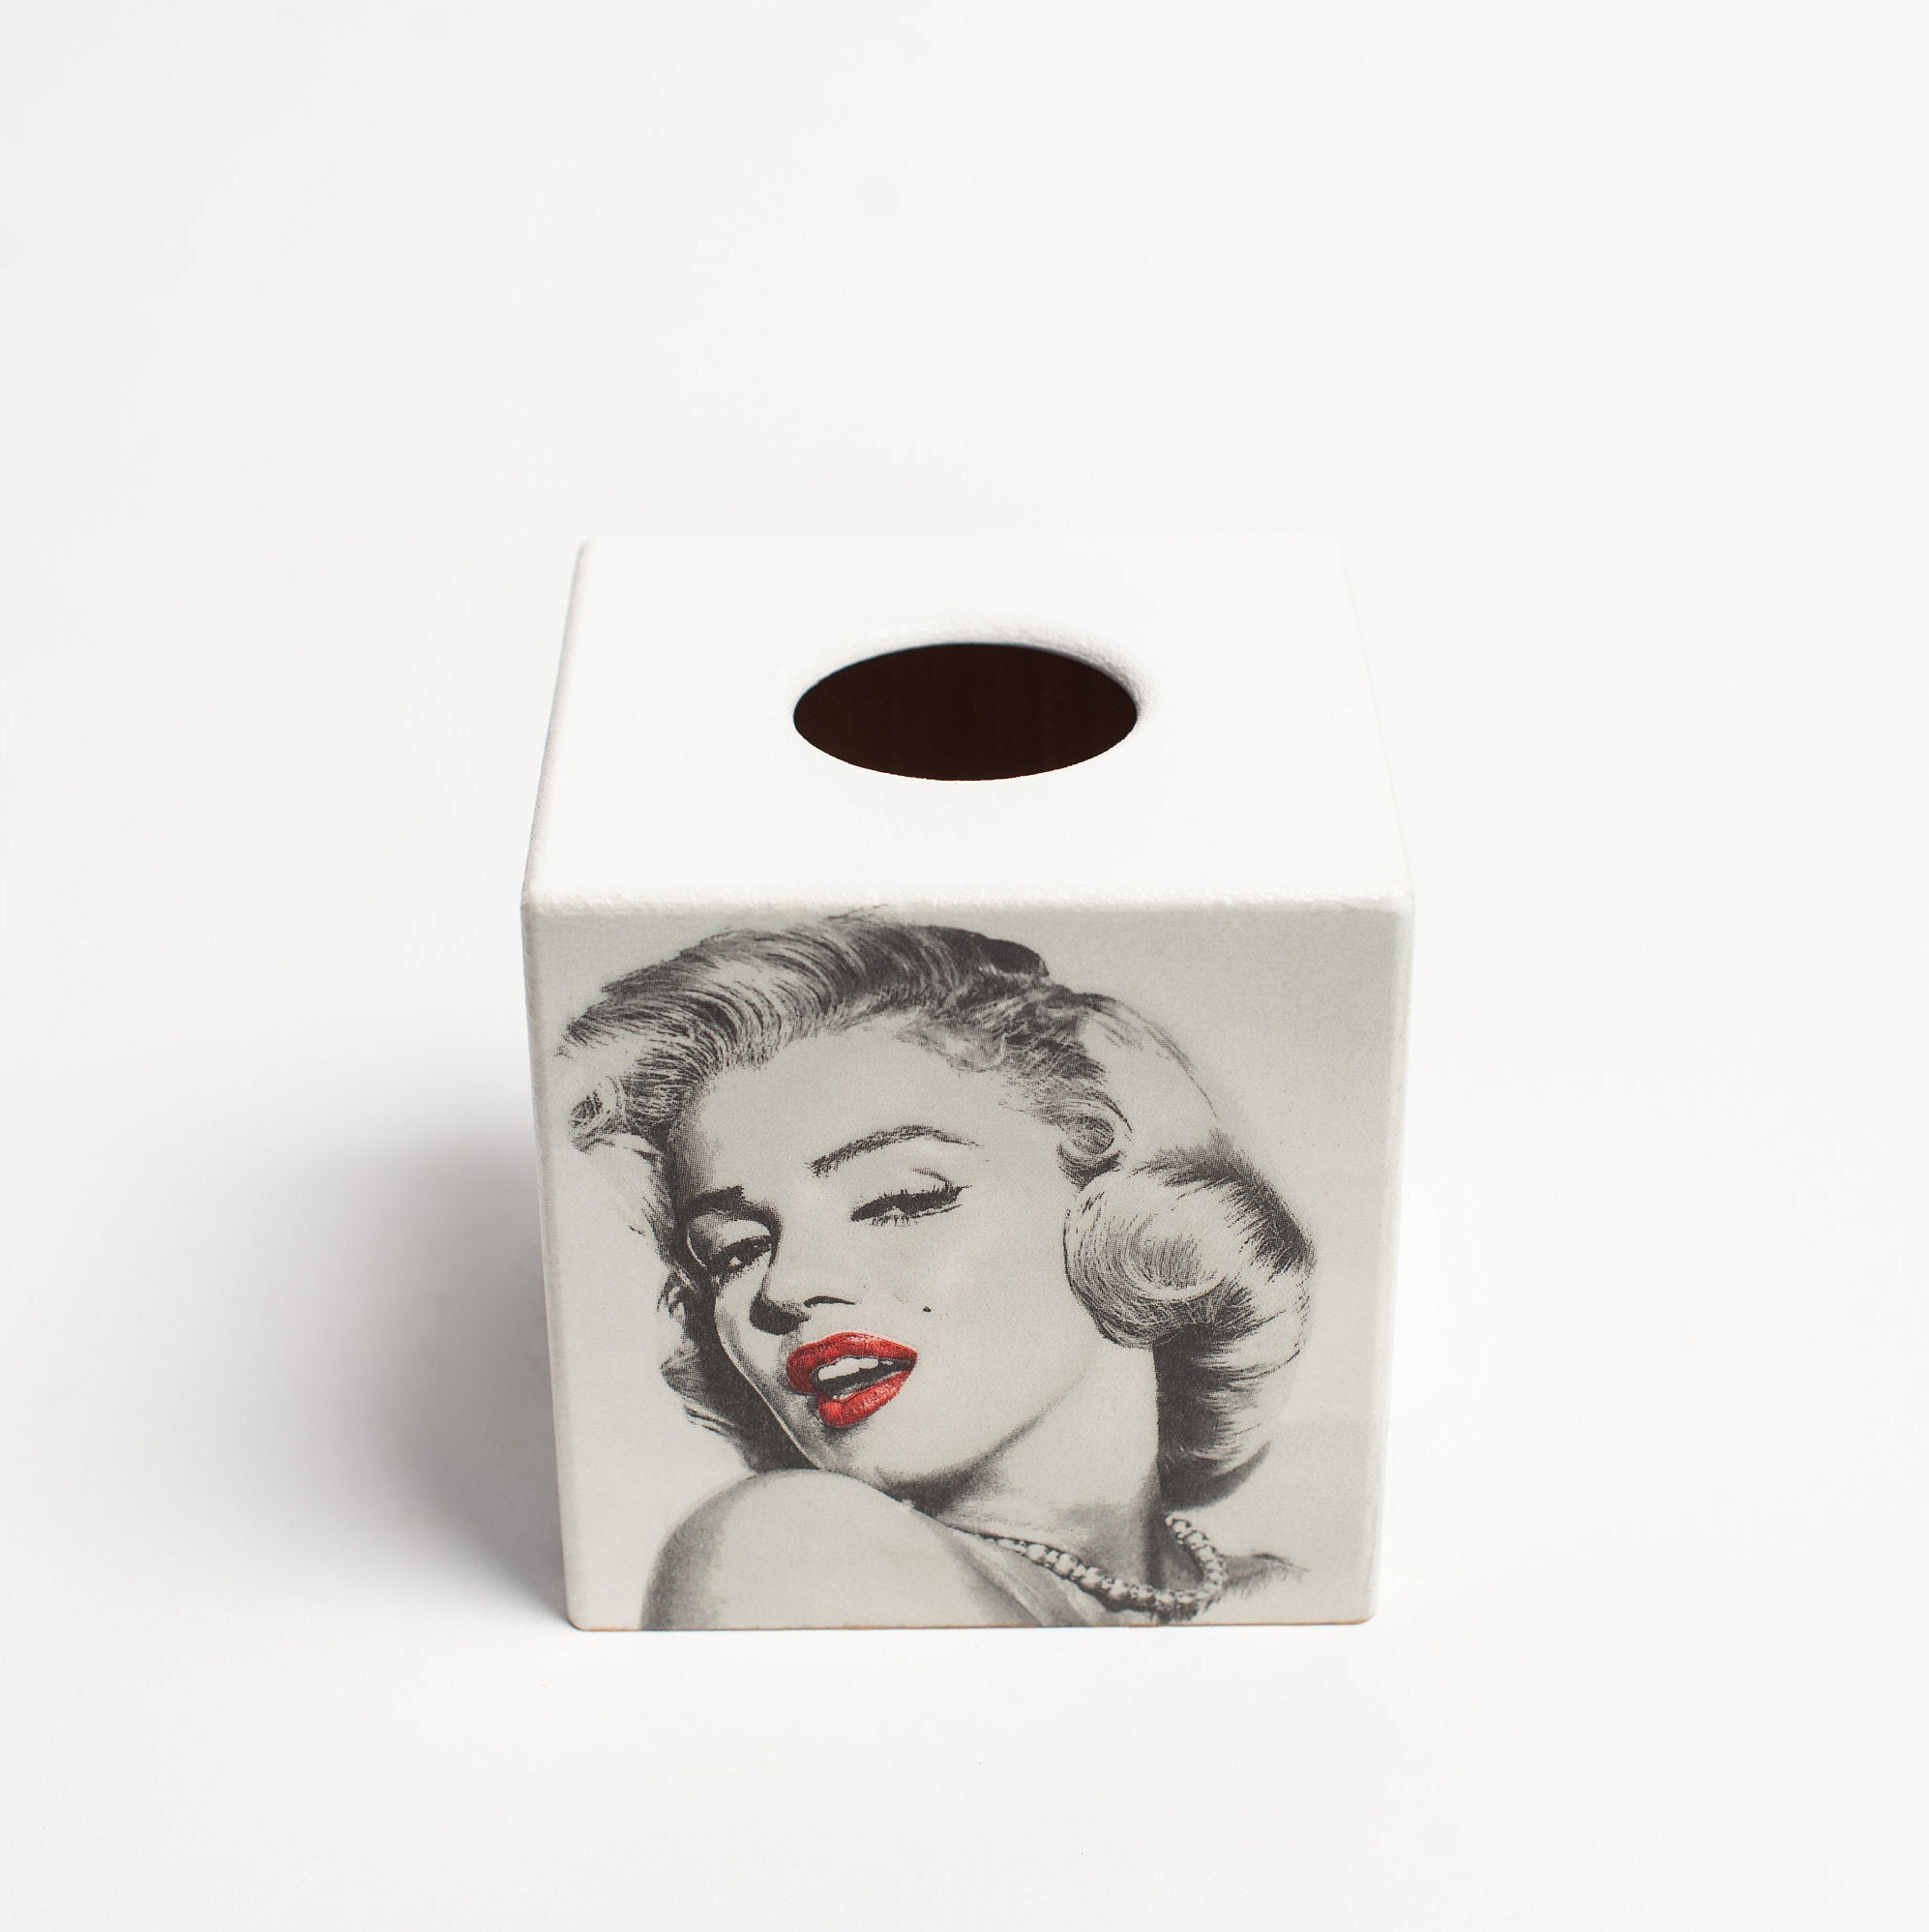 Marilyn Monroe Tissue Box Cover - Handmade